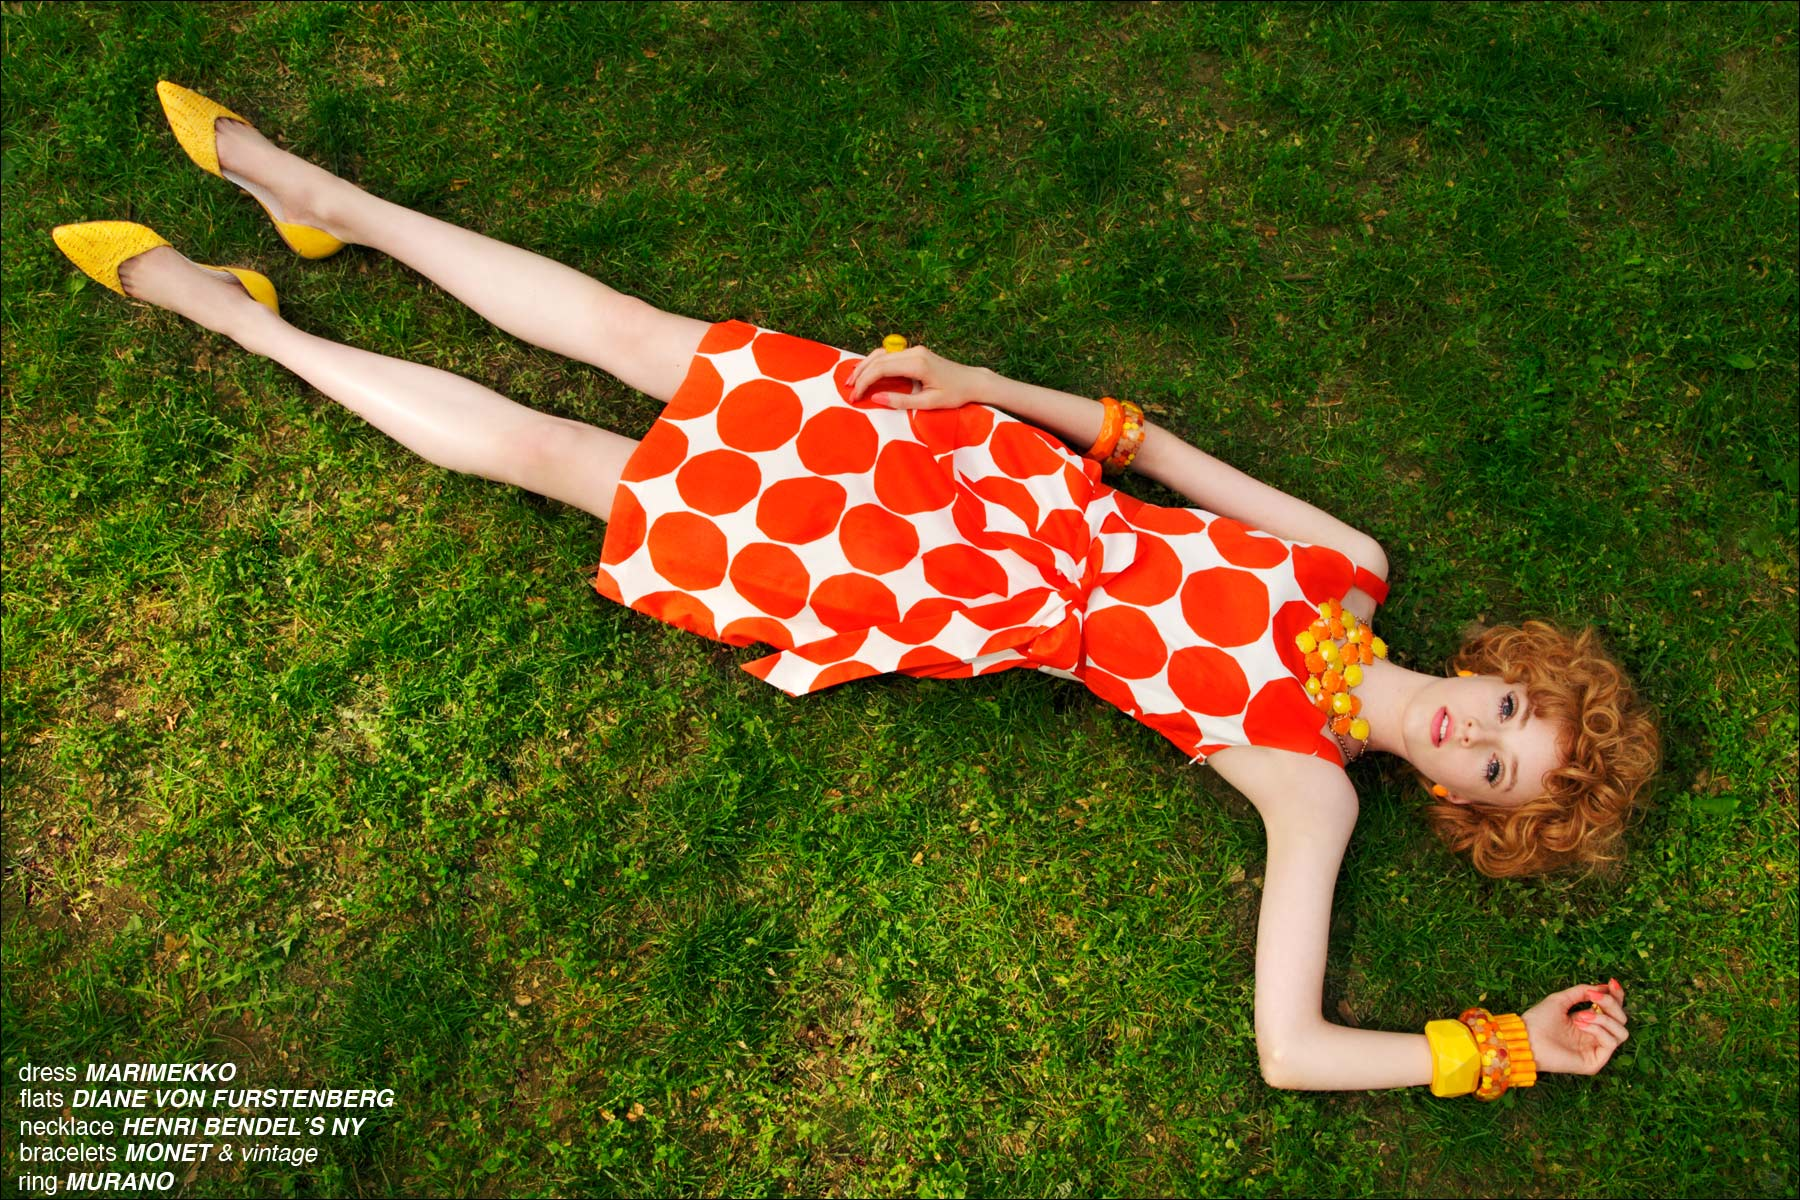 A 1960's inspired editorial exclusively using Marimekko clothing, photographed by Alexander Thompson for Ponyboy Magazine.